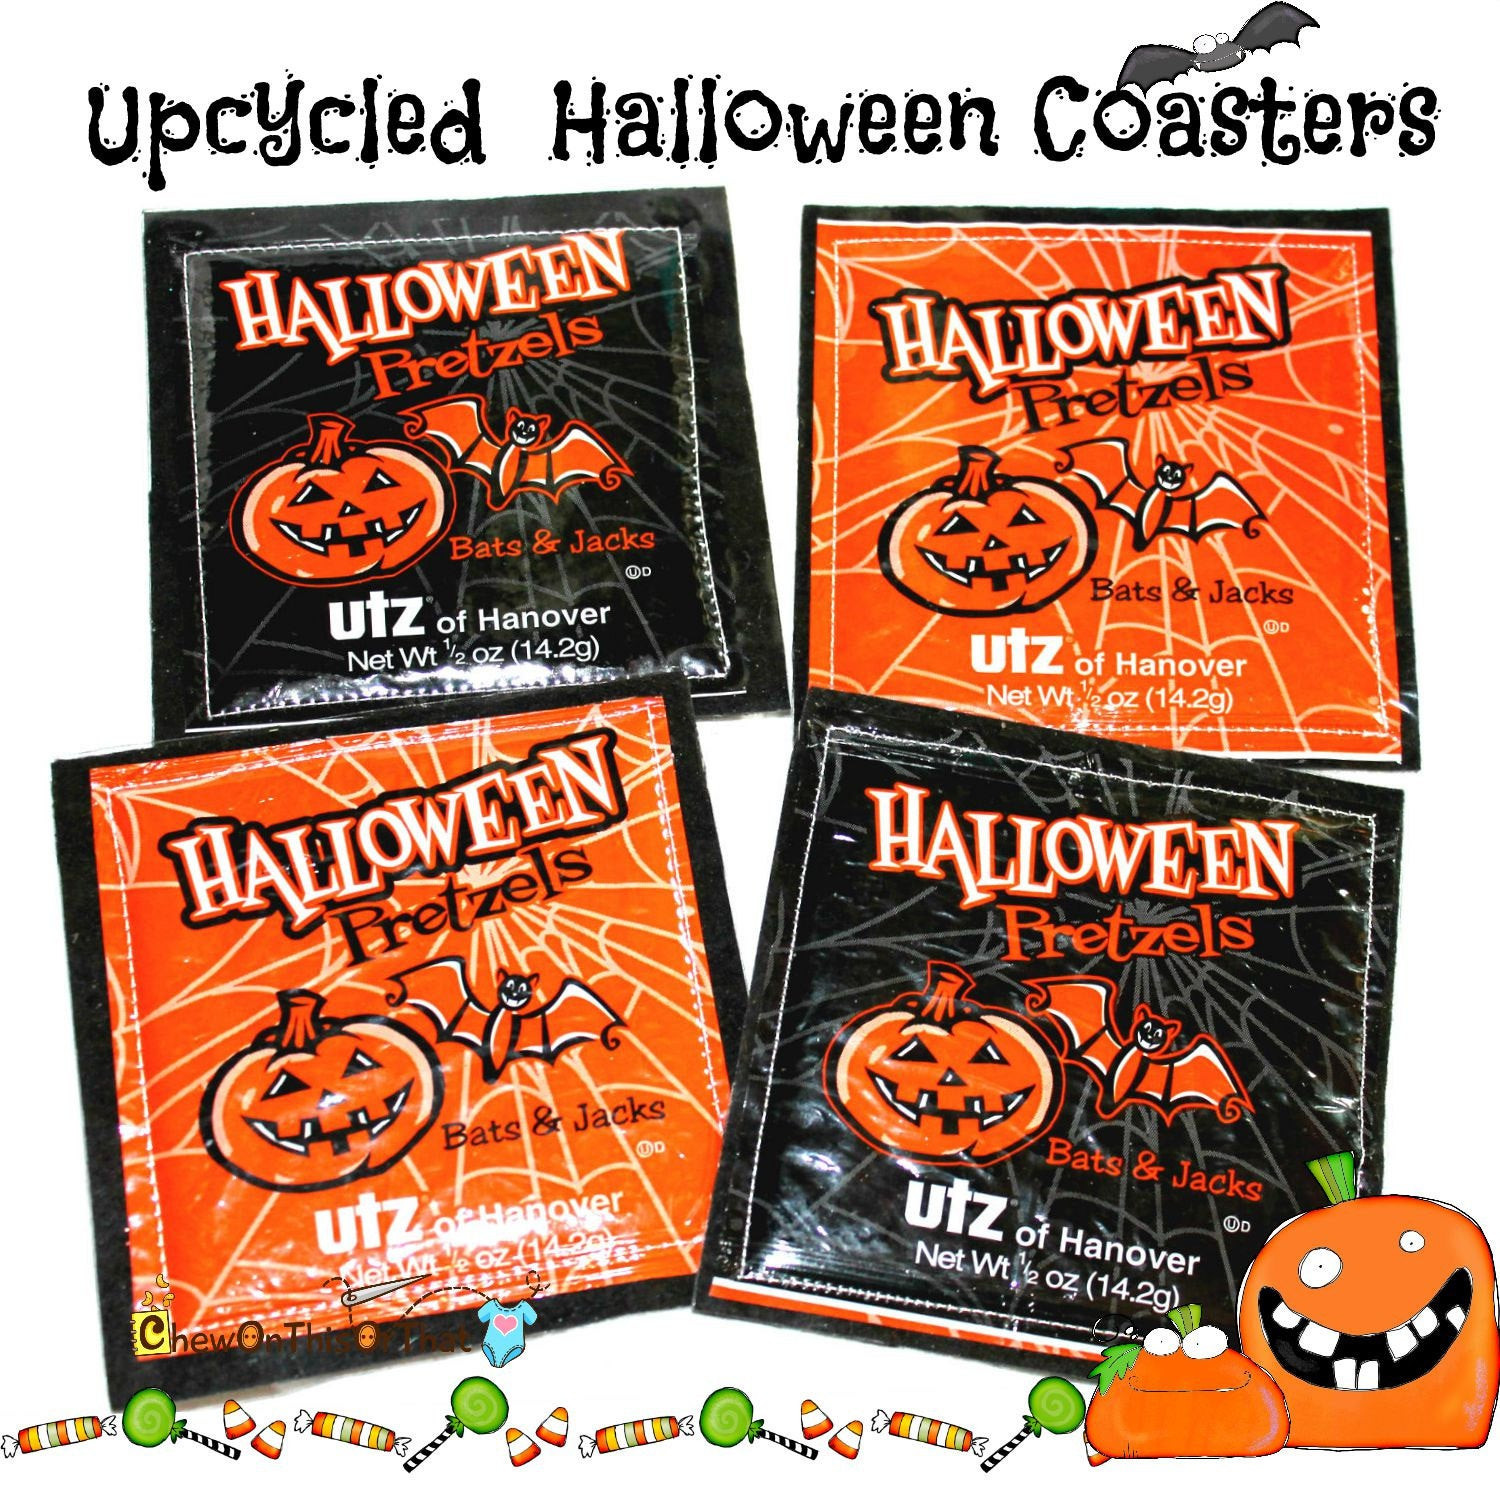 Utz Halloween Pretzels  Upcycled Halloween Utz Pumpkin and Bats Pretzel Coasters Set